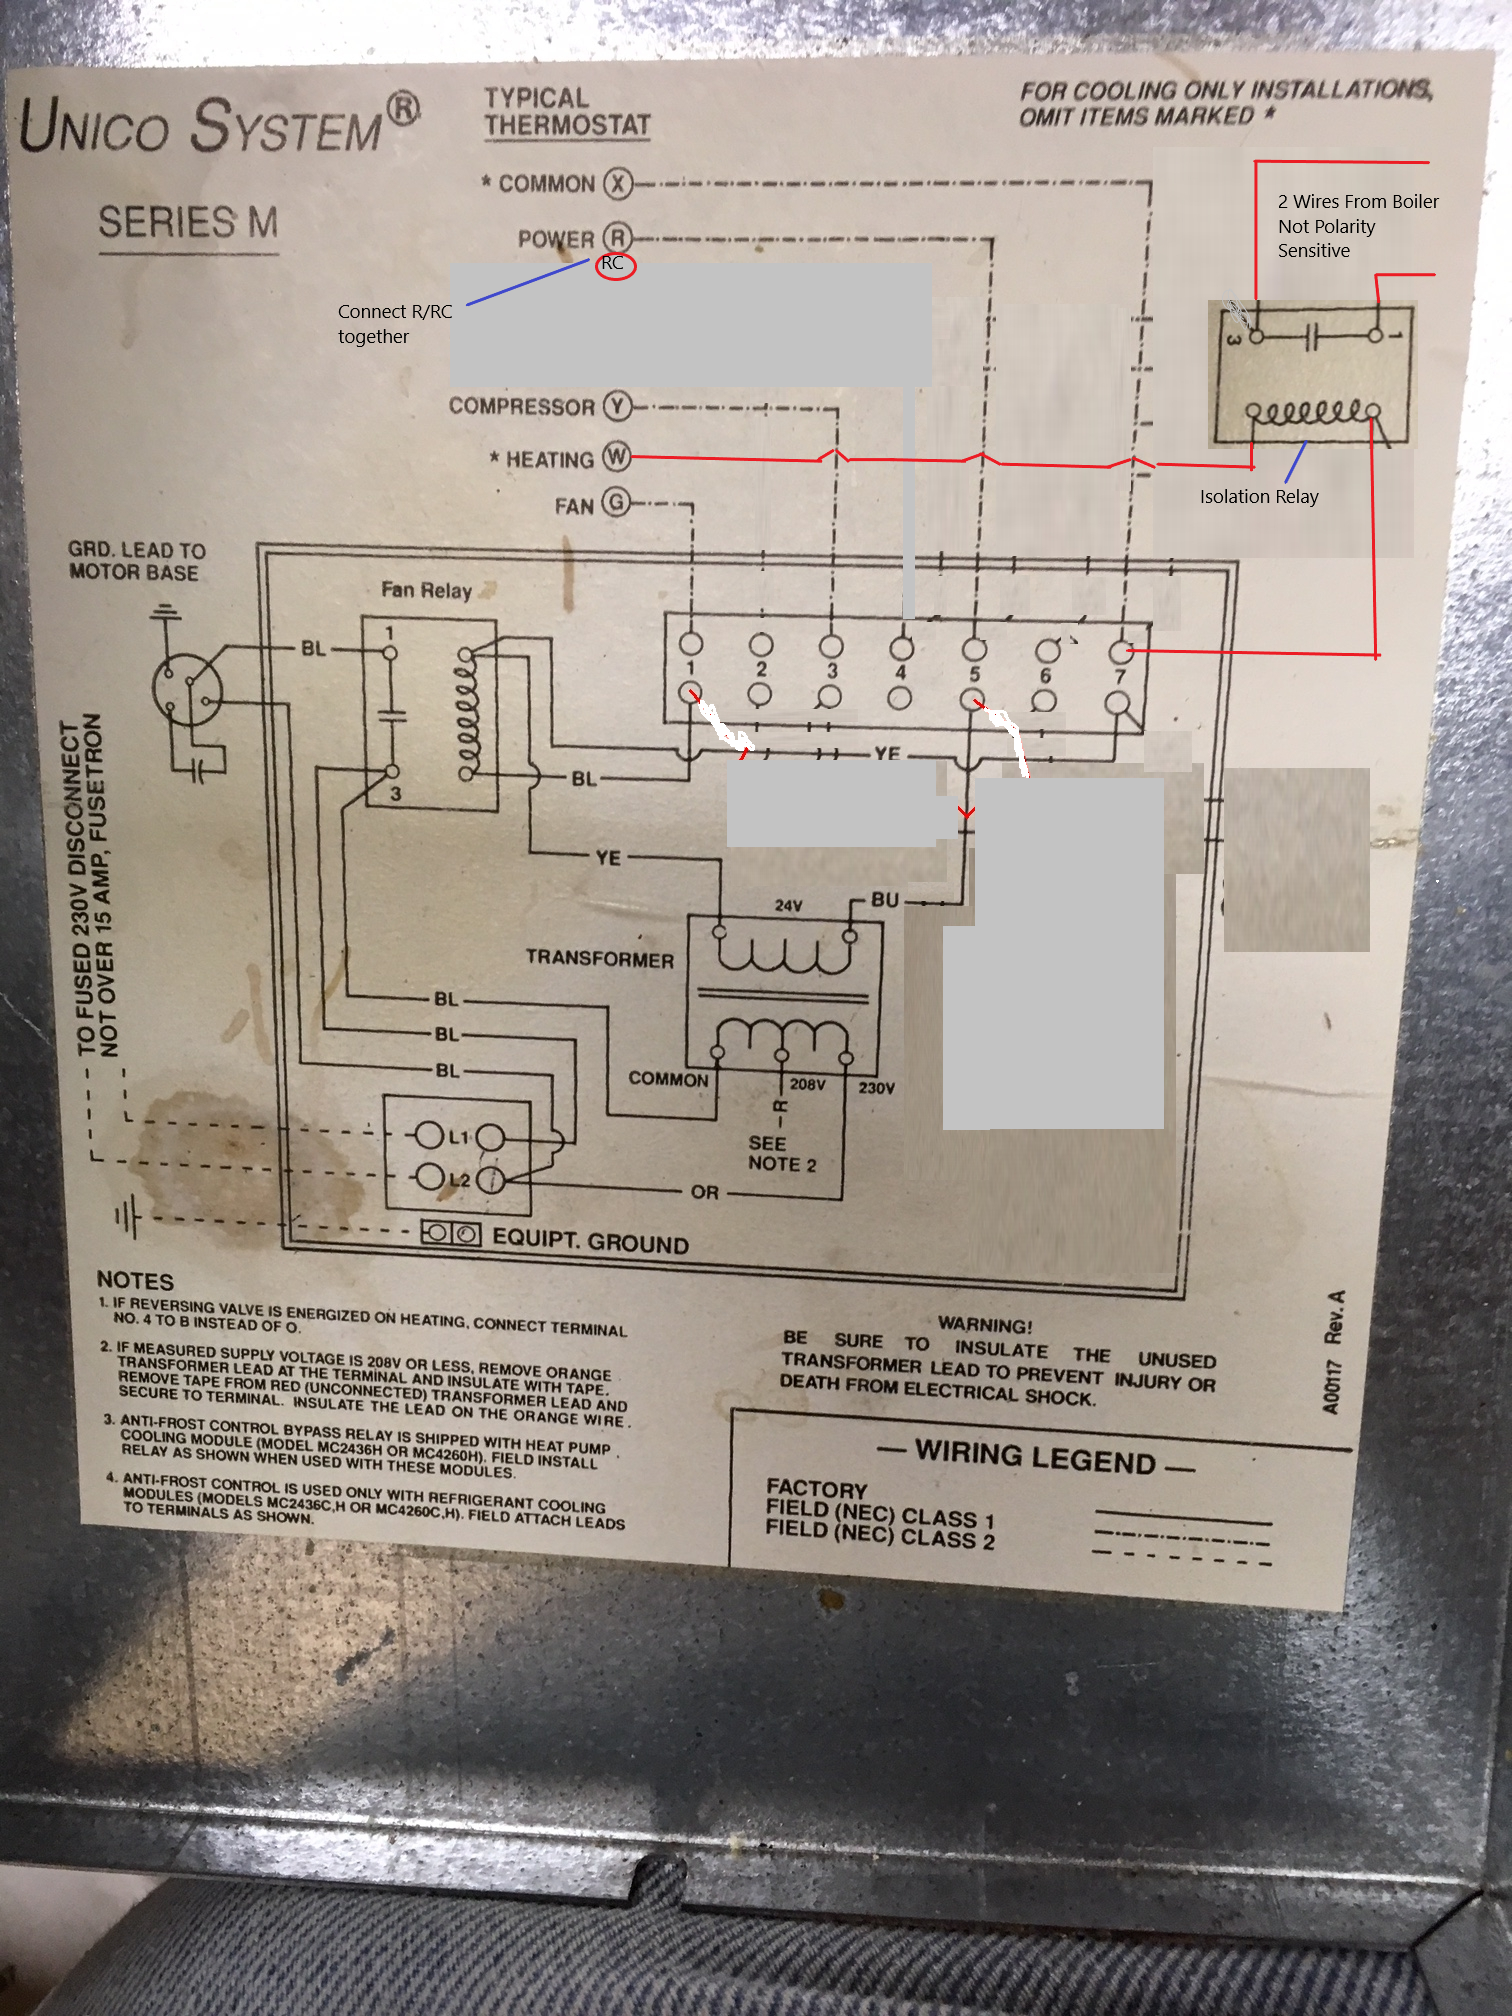 Air Handler Aquastat For Auto Mode Is Blowing The Transformer - HVAC on basic boiler piping diagram, basic electrical circuit diagram, basic steam cycle boiler, system 2000 boiler wiring diagram,